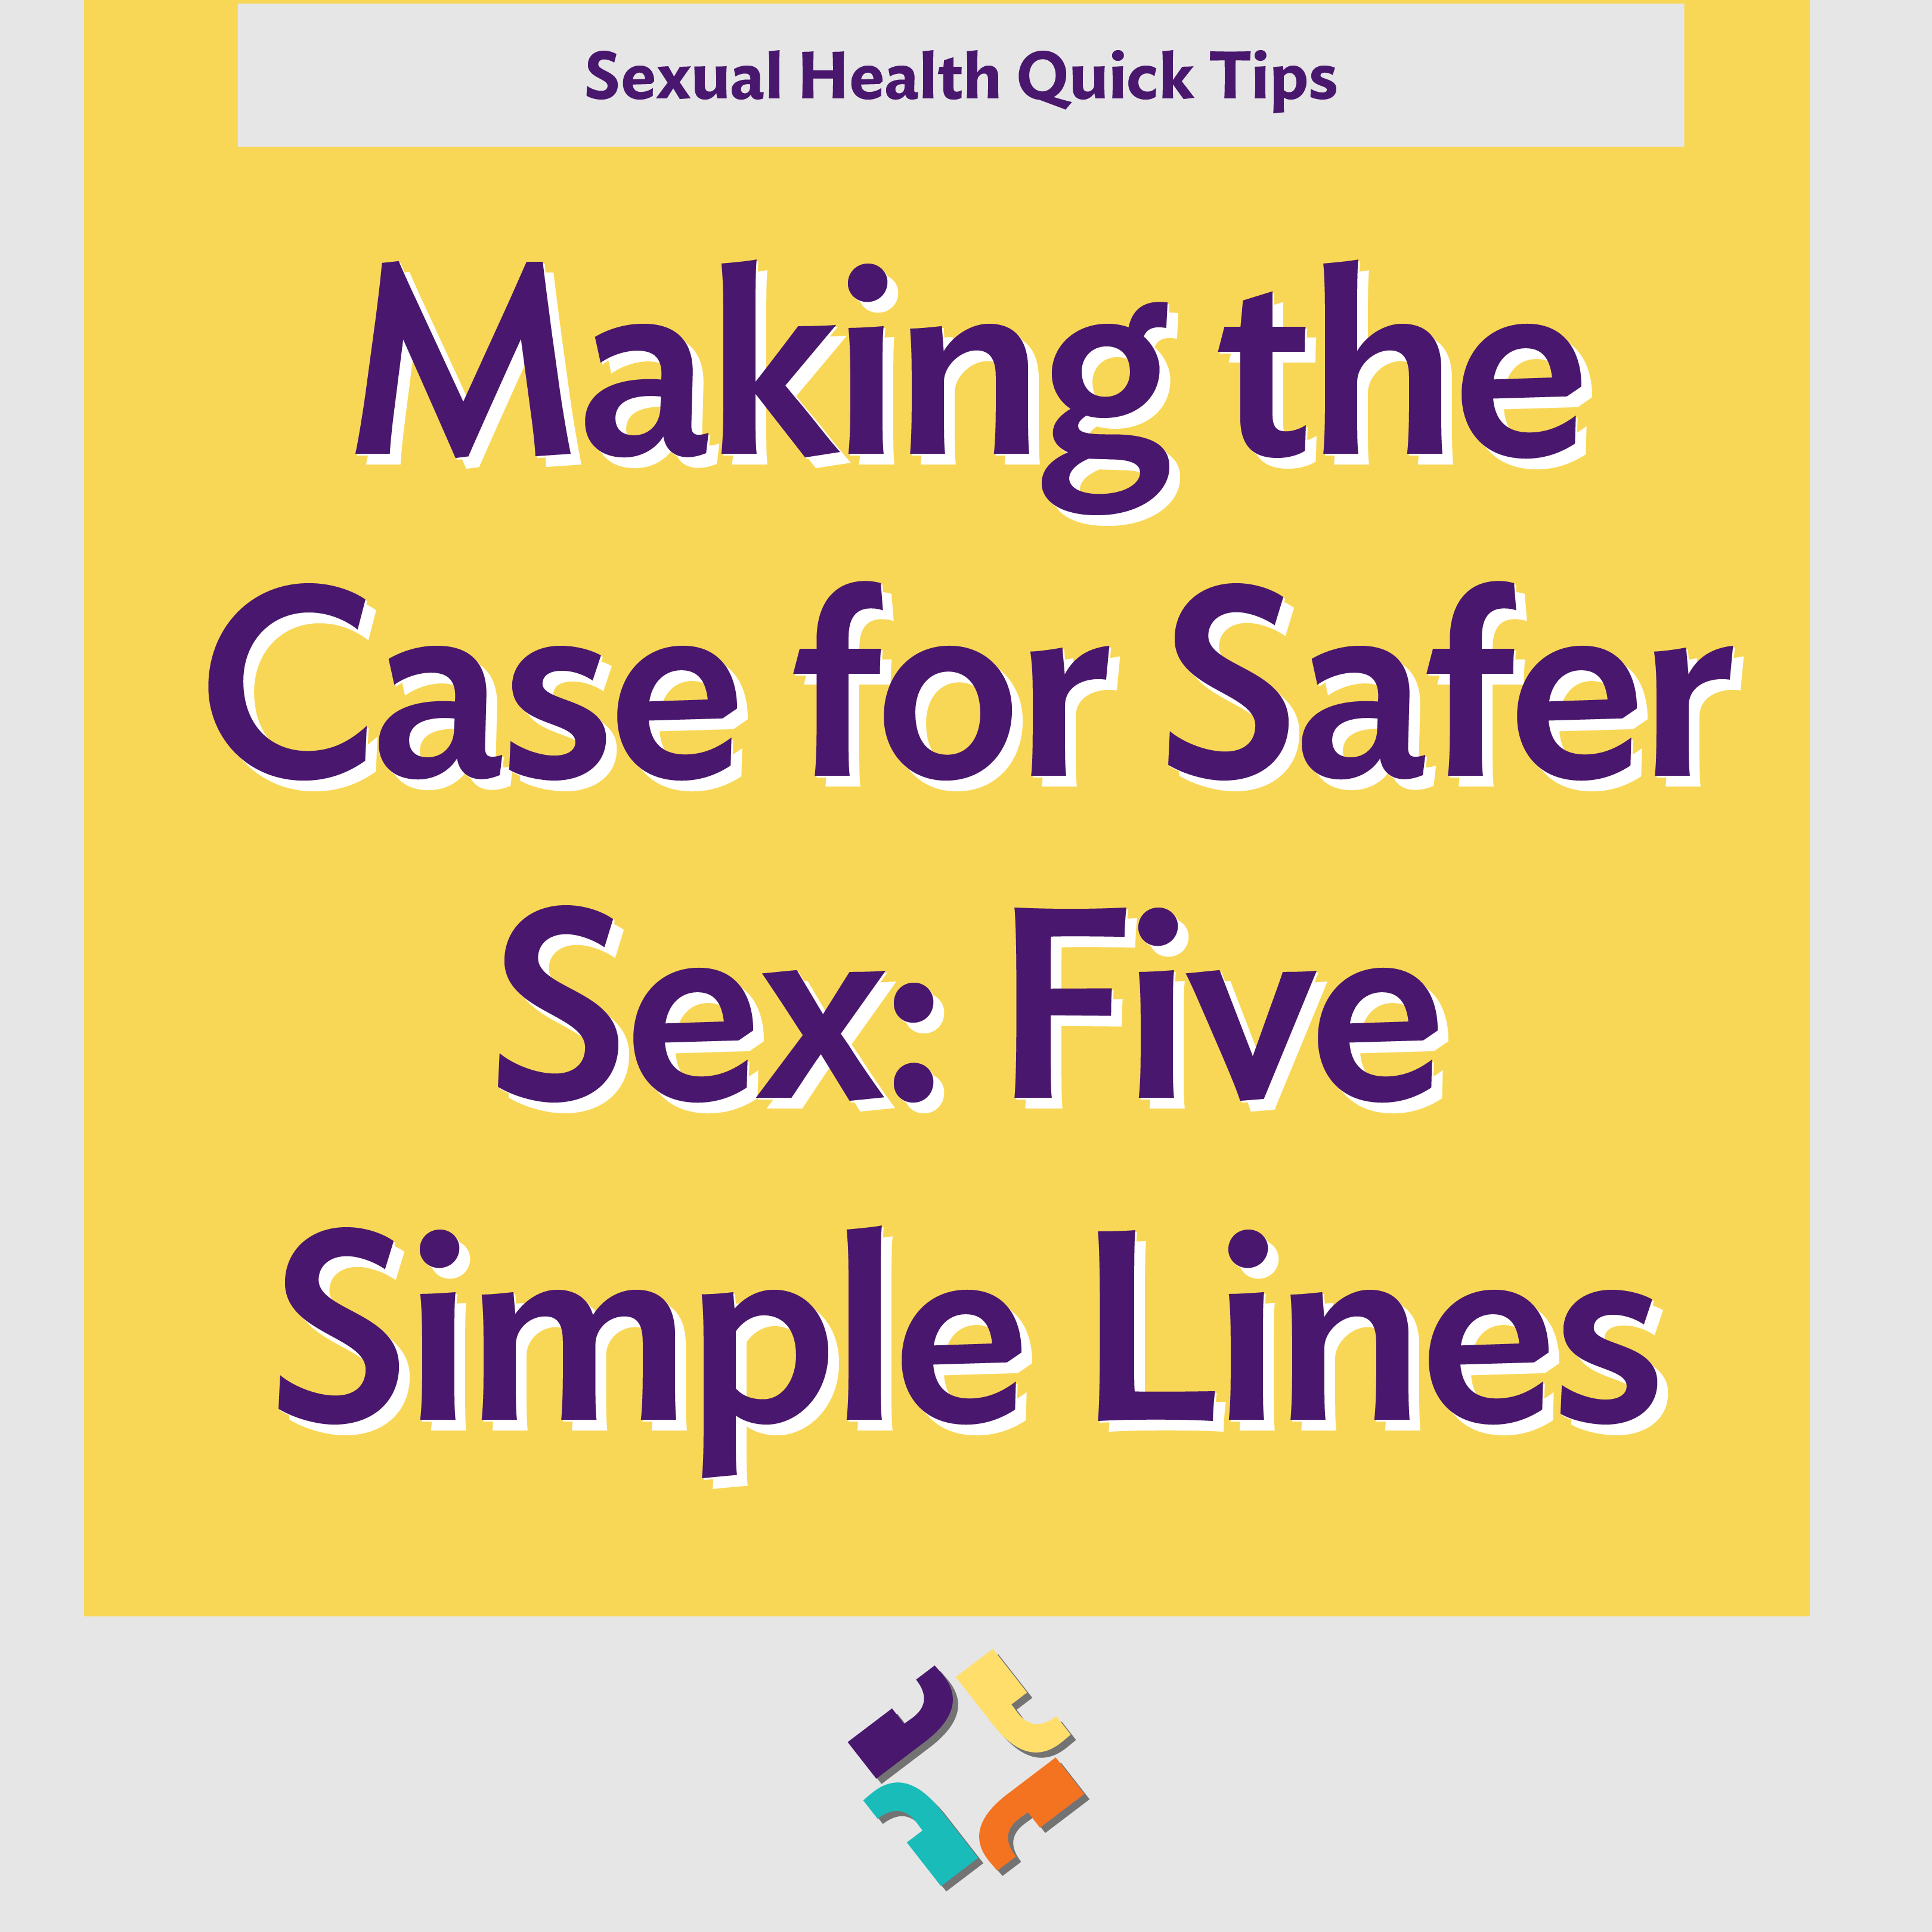 Making the Case for Safer Sex - Five Simple Lines